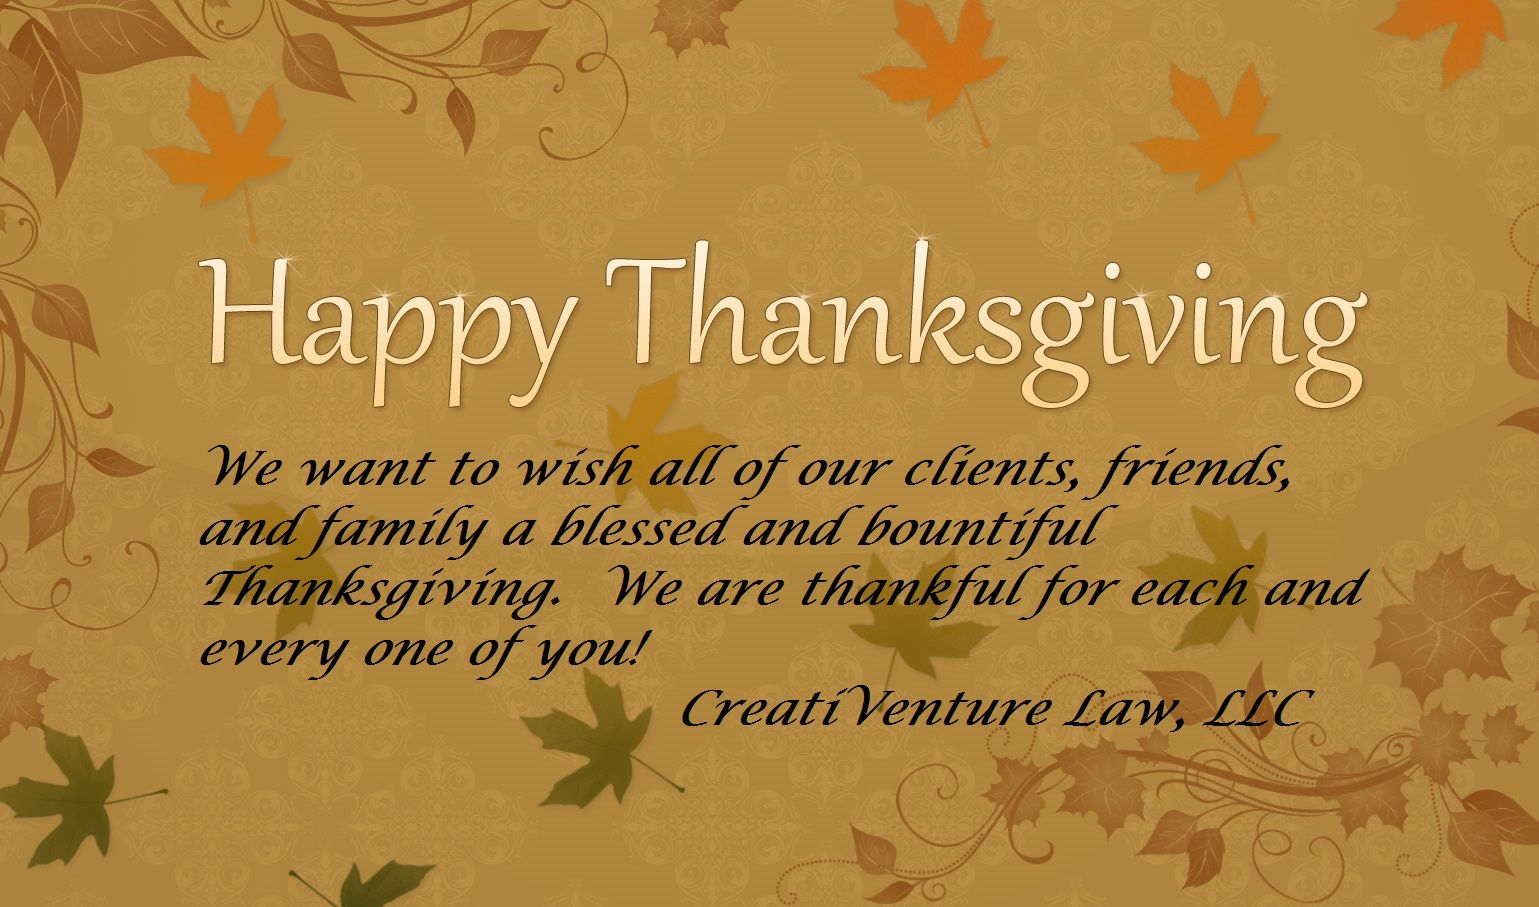 Thanksgiving Images Cartoon Thanksgiving Images Clip Art Thanksgiving Day Images Thank Thanksgiving Wishes To Friends Thanksgiving Quotes Thanksgiving Messages